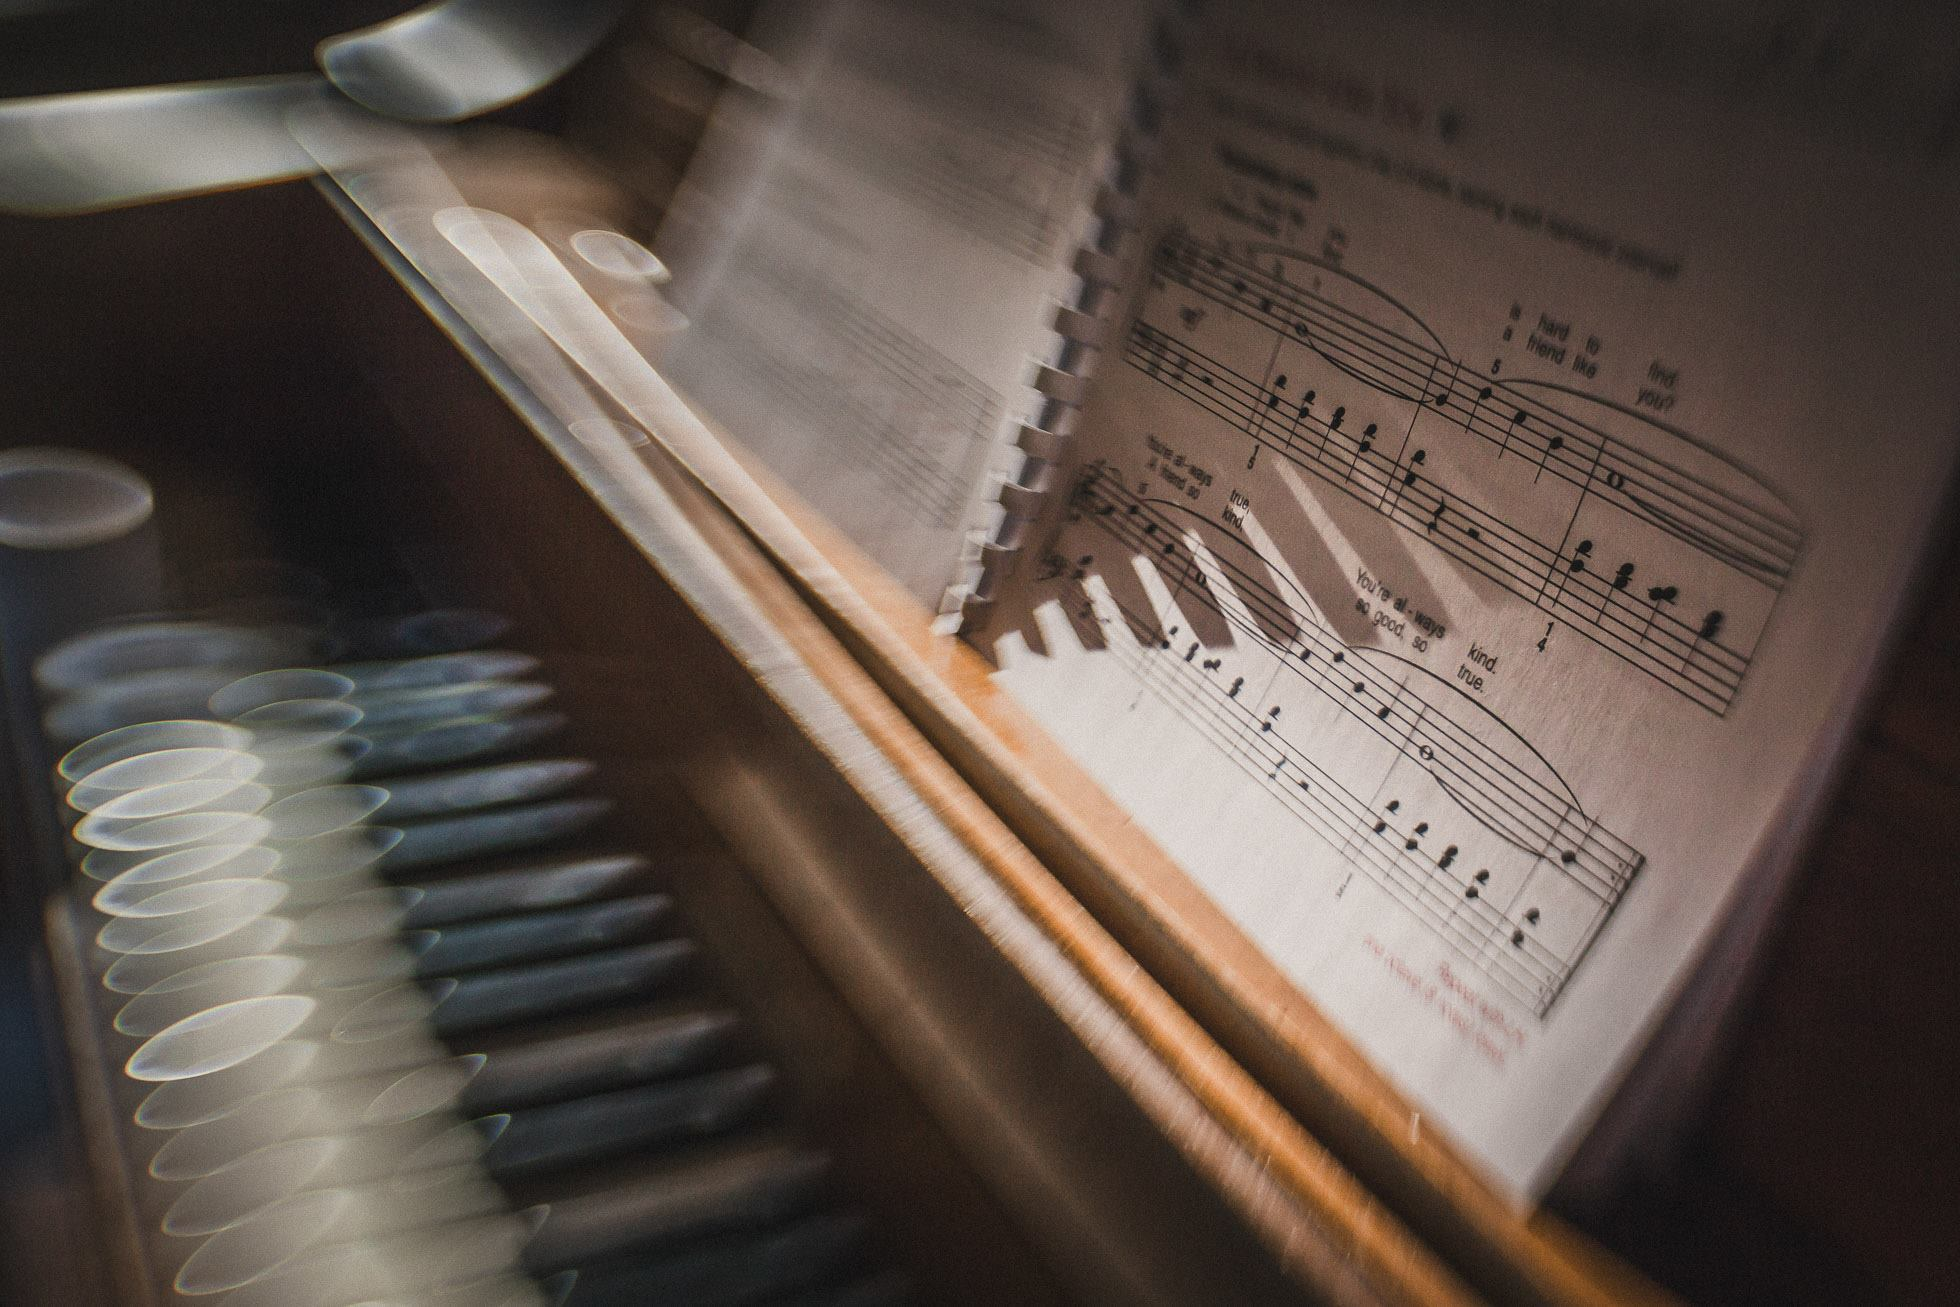 sheet music on a piano long shadows from spiral notebook keys keyboard lensbaby featured photos